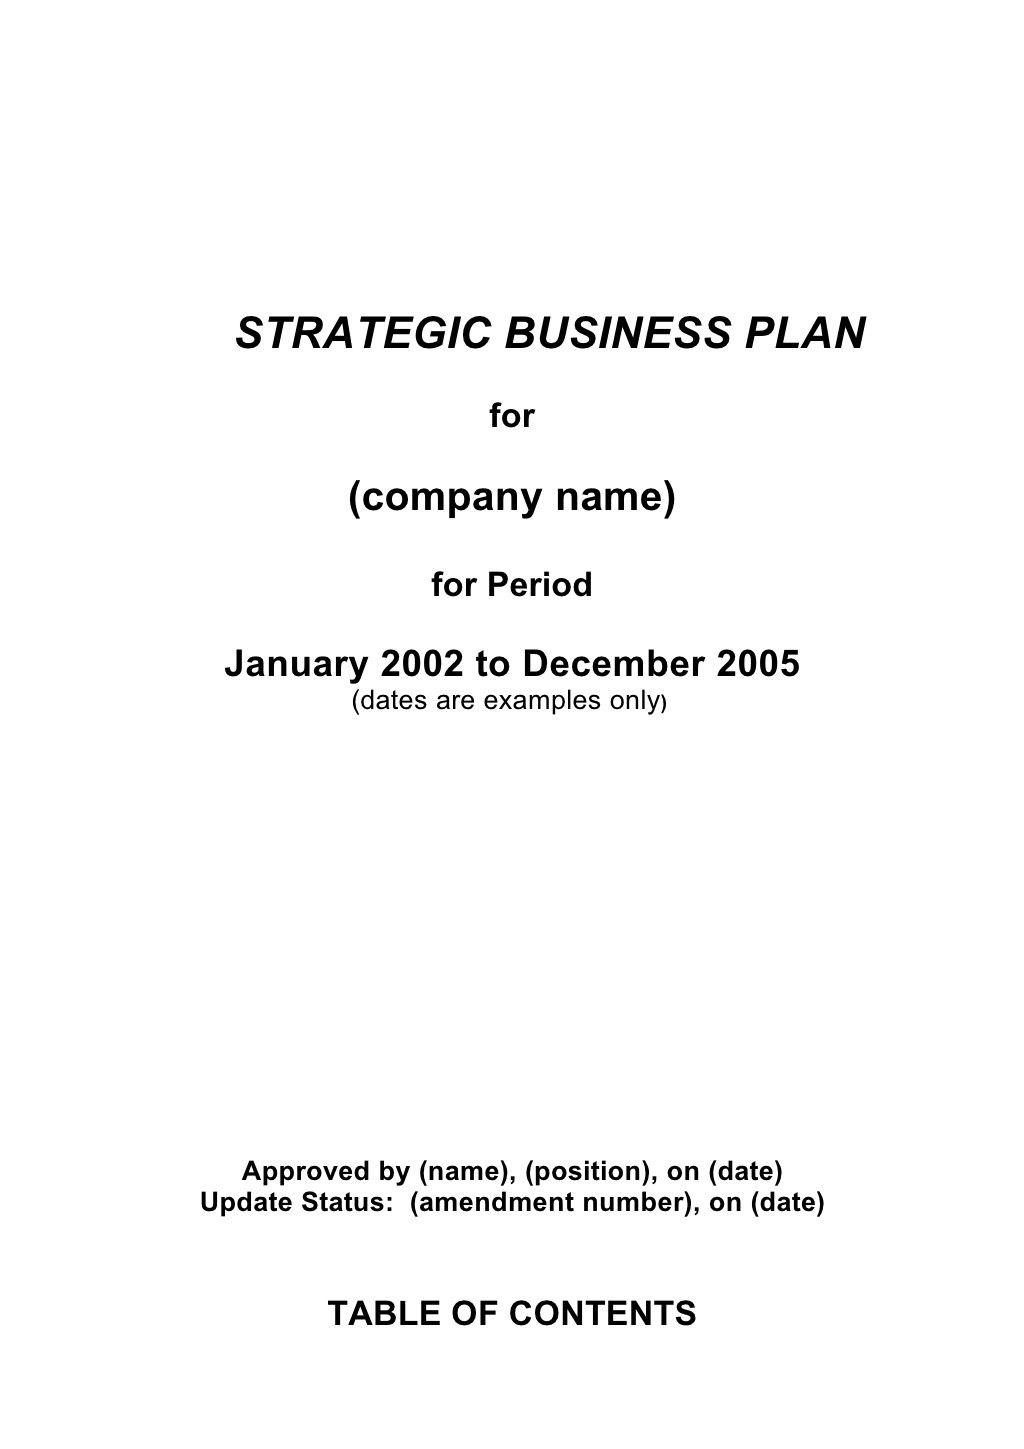 Comprehensivestrategicbusinessplantemplate By Earl Stevens - Effective business plan template